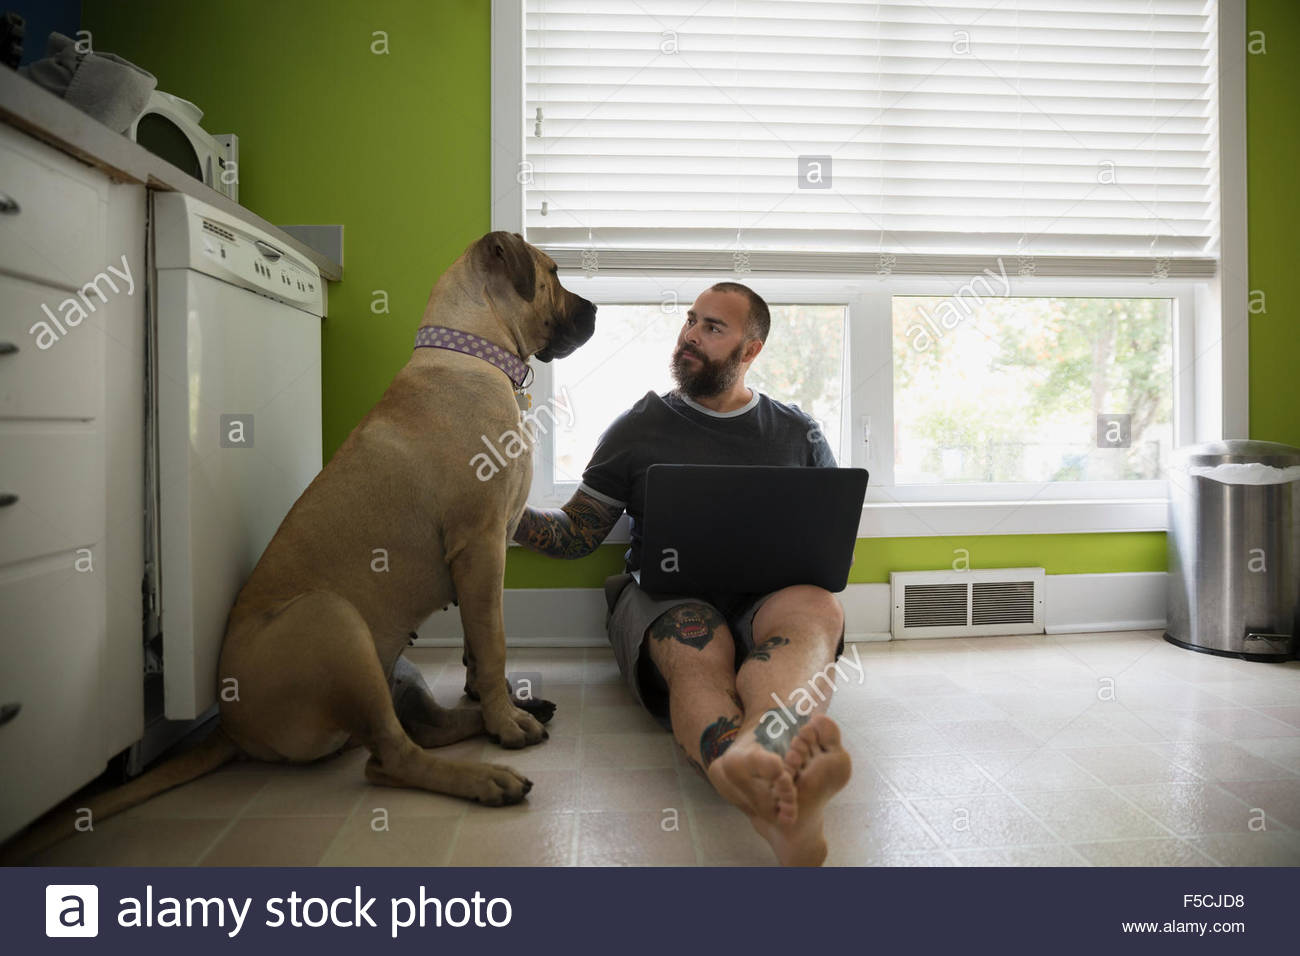 Man with laptop petting dog on kitchen floor - Stock Image